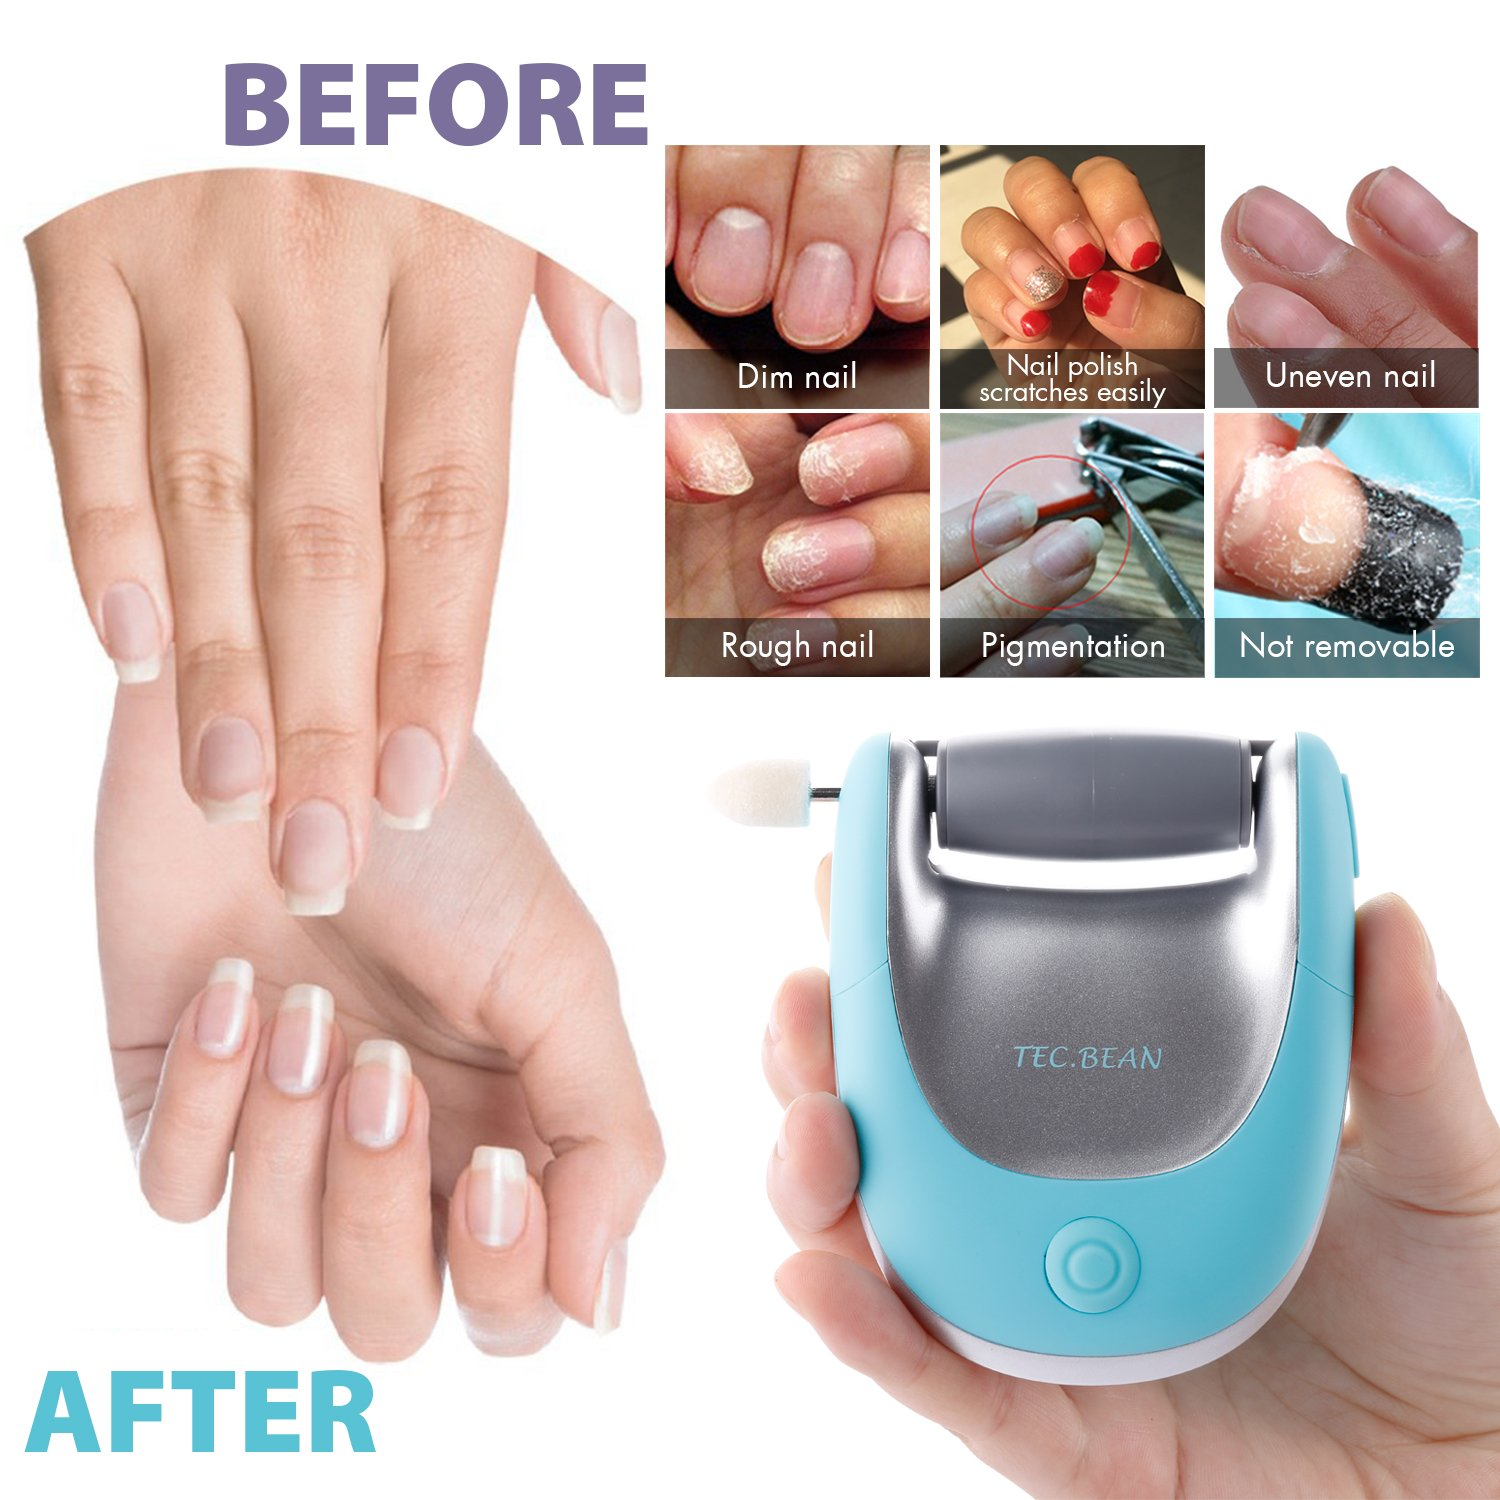 Nail polisher and callus remover nail care kit be sure to check out - 2 In 1 Electric Foot File Callus Remover Pedicure Manicure Set Foot Care Tool To Remove Dead Rough And Dry Skin Nail Drill Buffer And Polisher For Salon